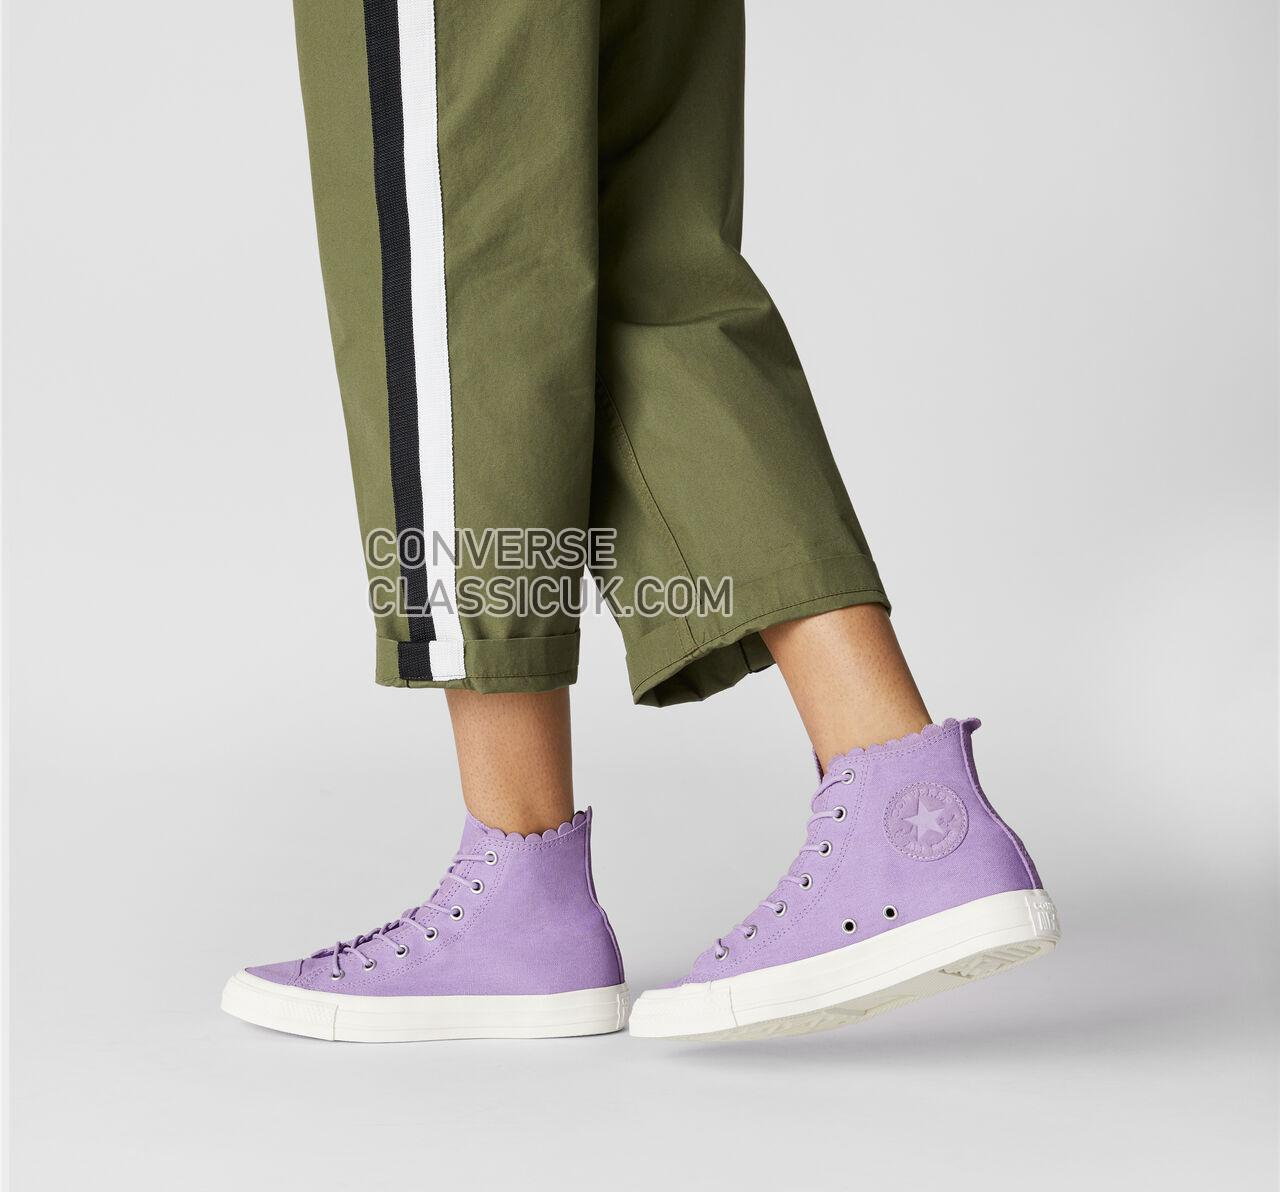 Converse Chuck Taylor All Star Frilly Thrills High Top Womens 564118C Washed Lilac/Washed Lilac Shoes